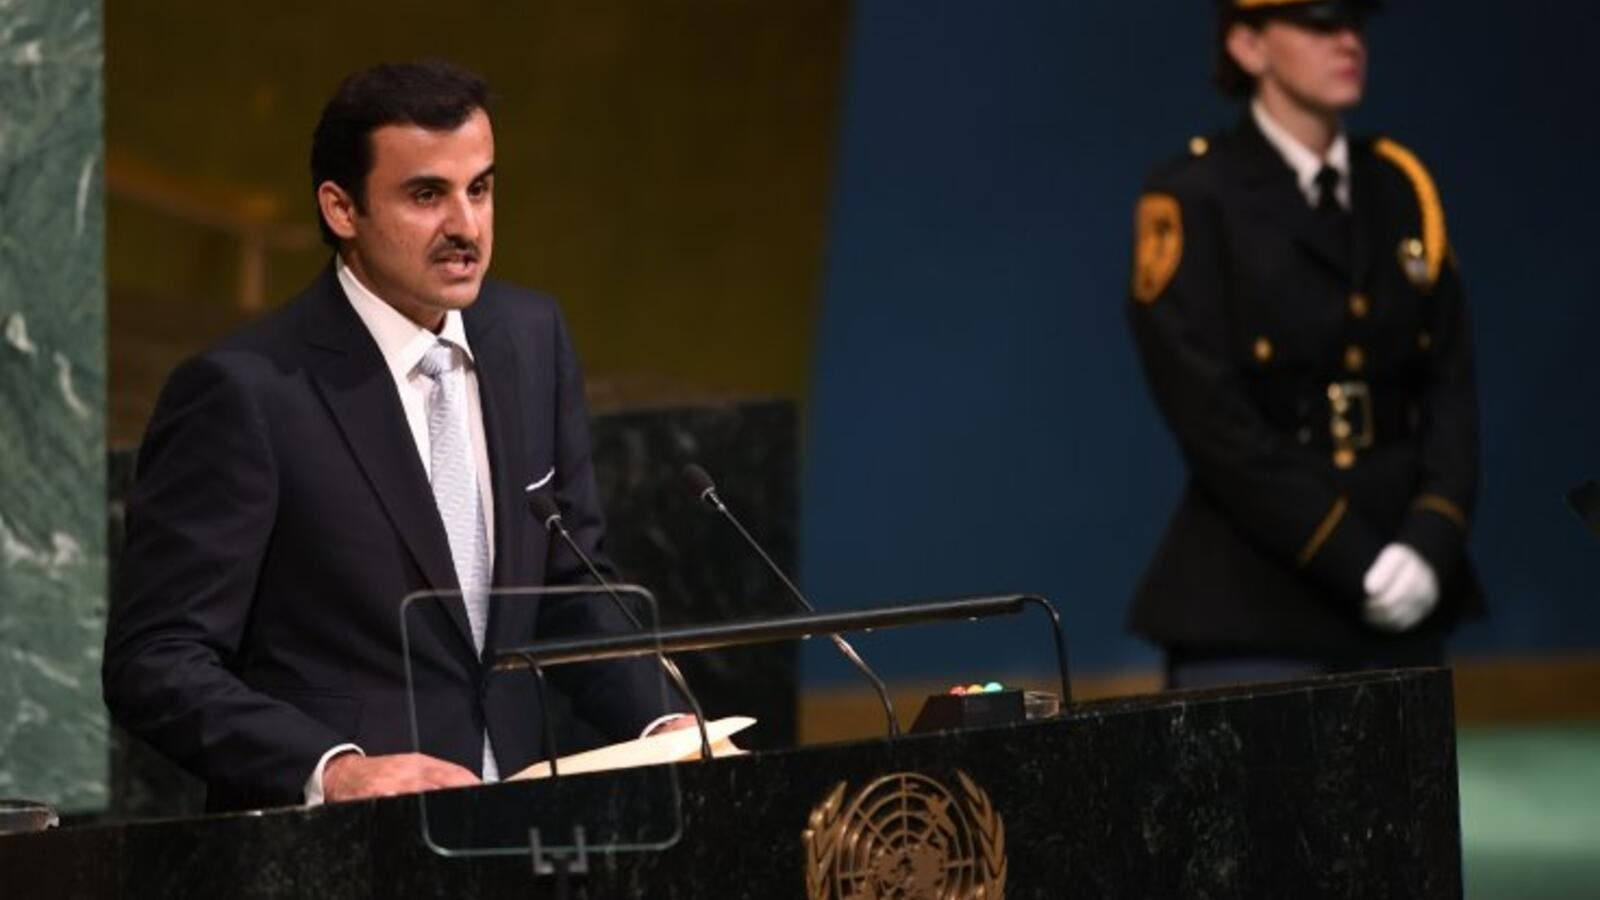 Qatar's Emir, Tamimi bin Hamad had a speech at the latest meeting for the UN General Assembly earlier this week. (File Photo/AFP)